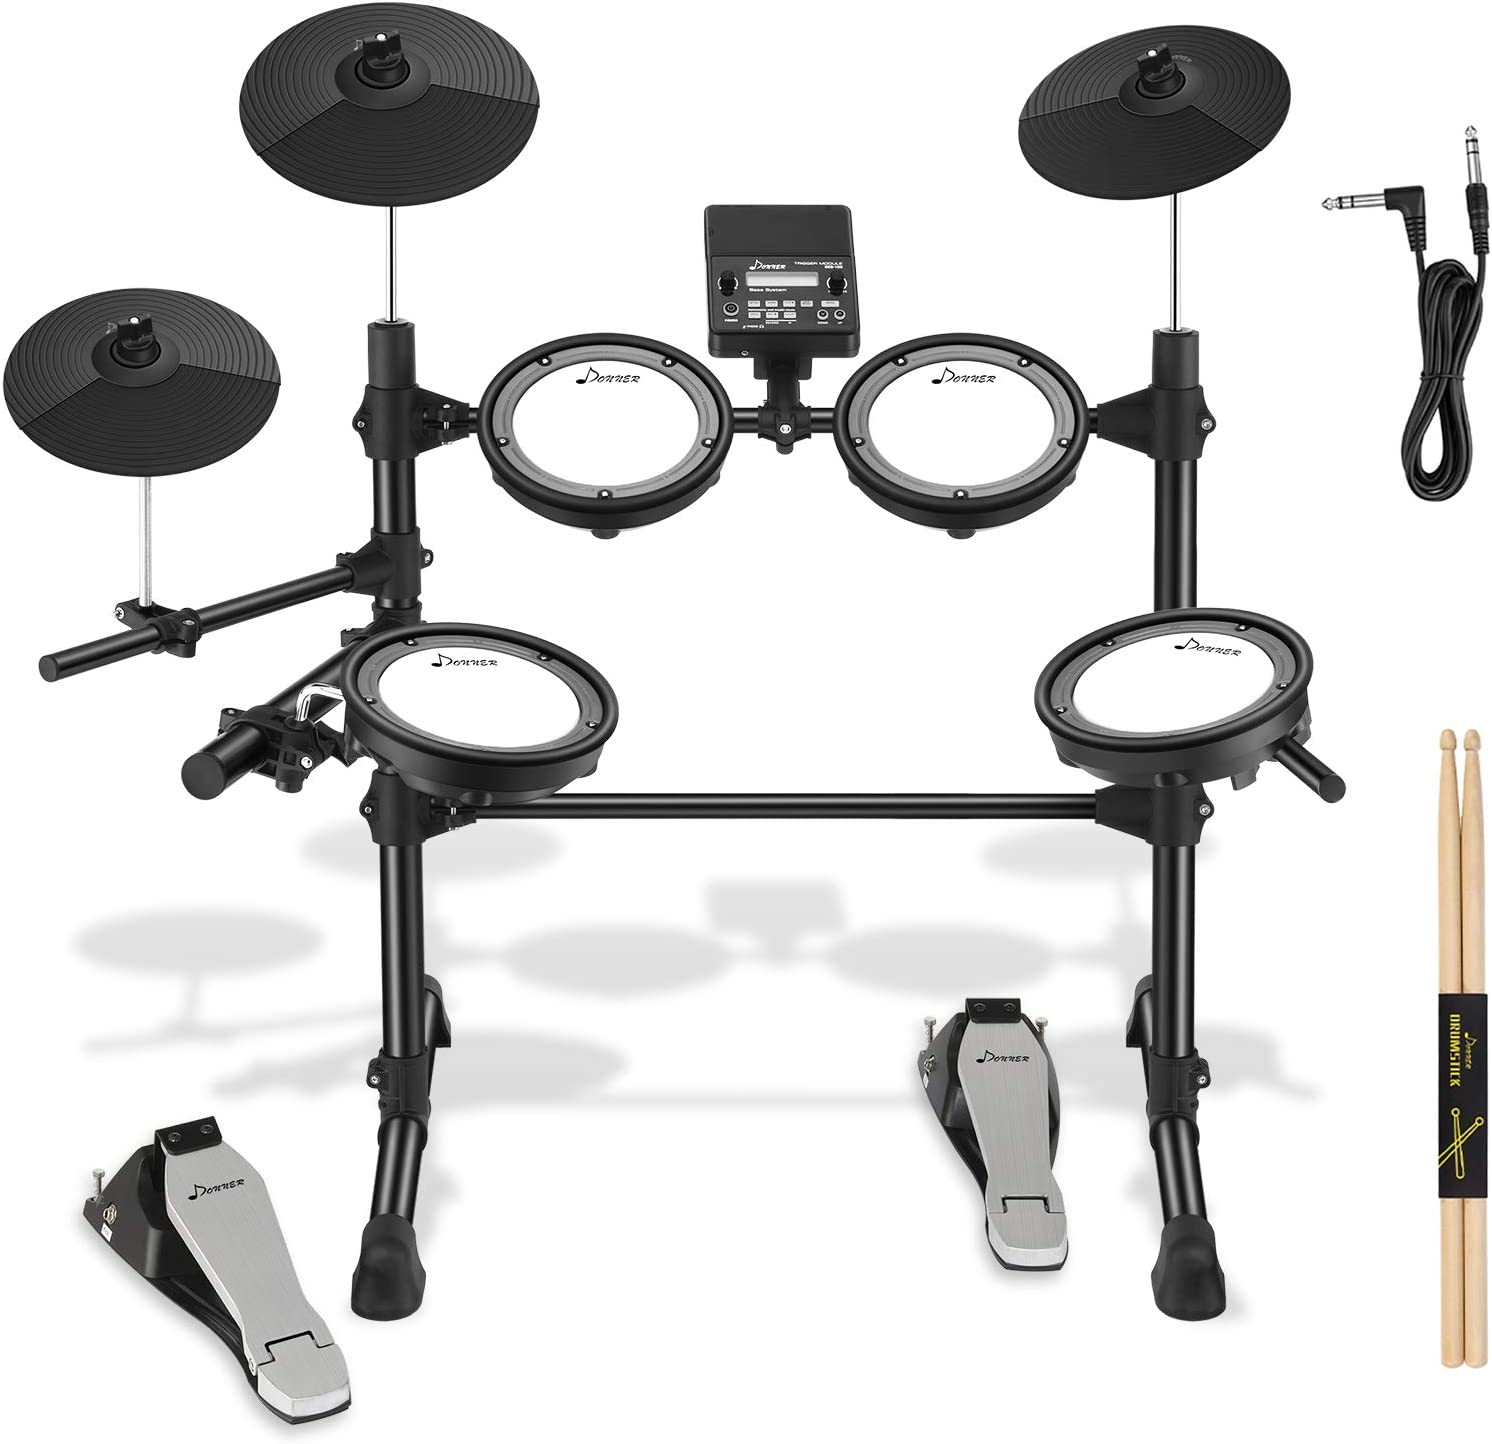 Donner DED-100 Electric Drum Set for Christmas Electronic Kit with Deluxe Mesh Kit, Sticks and Audio Cable, More Stable Iron Metal Support for Adults Teens